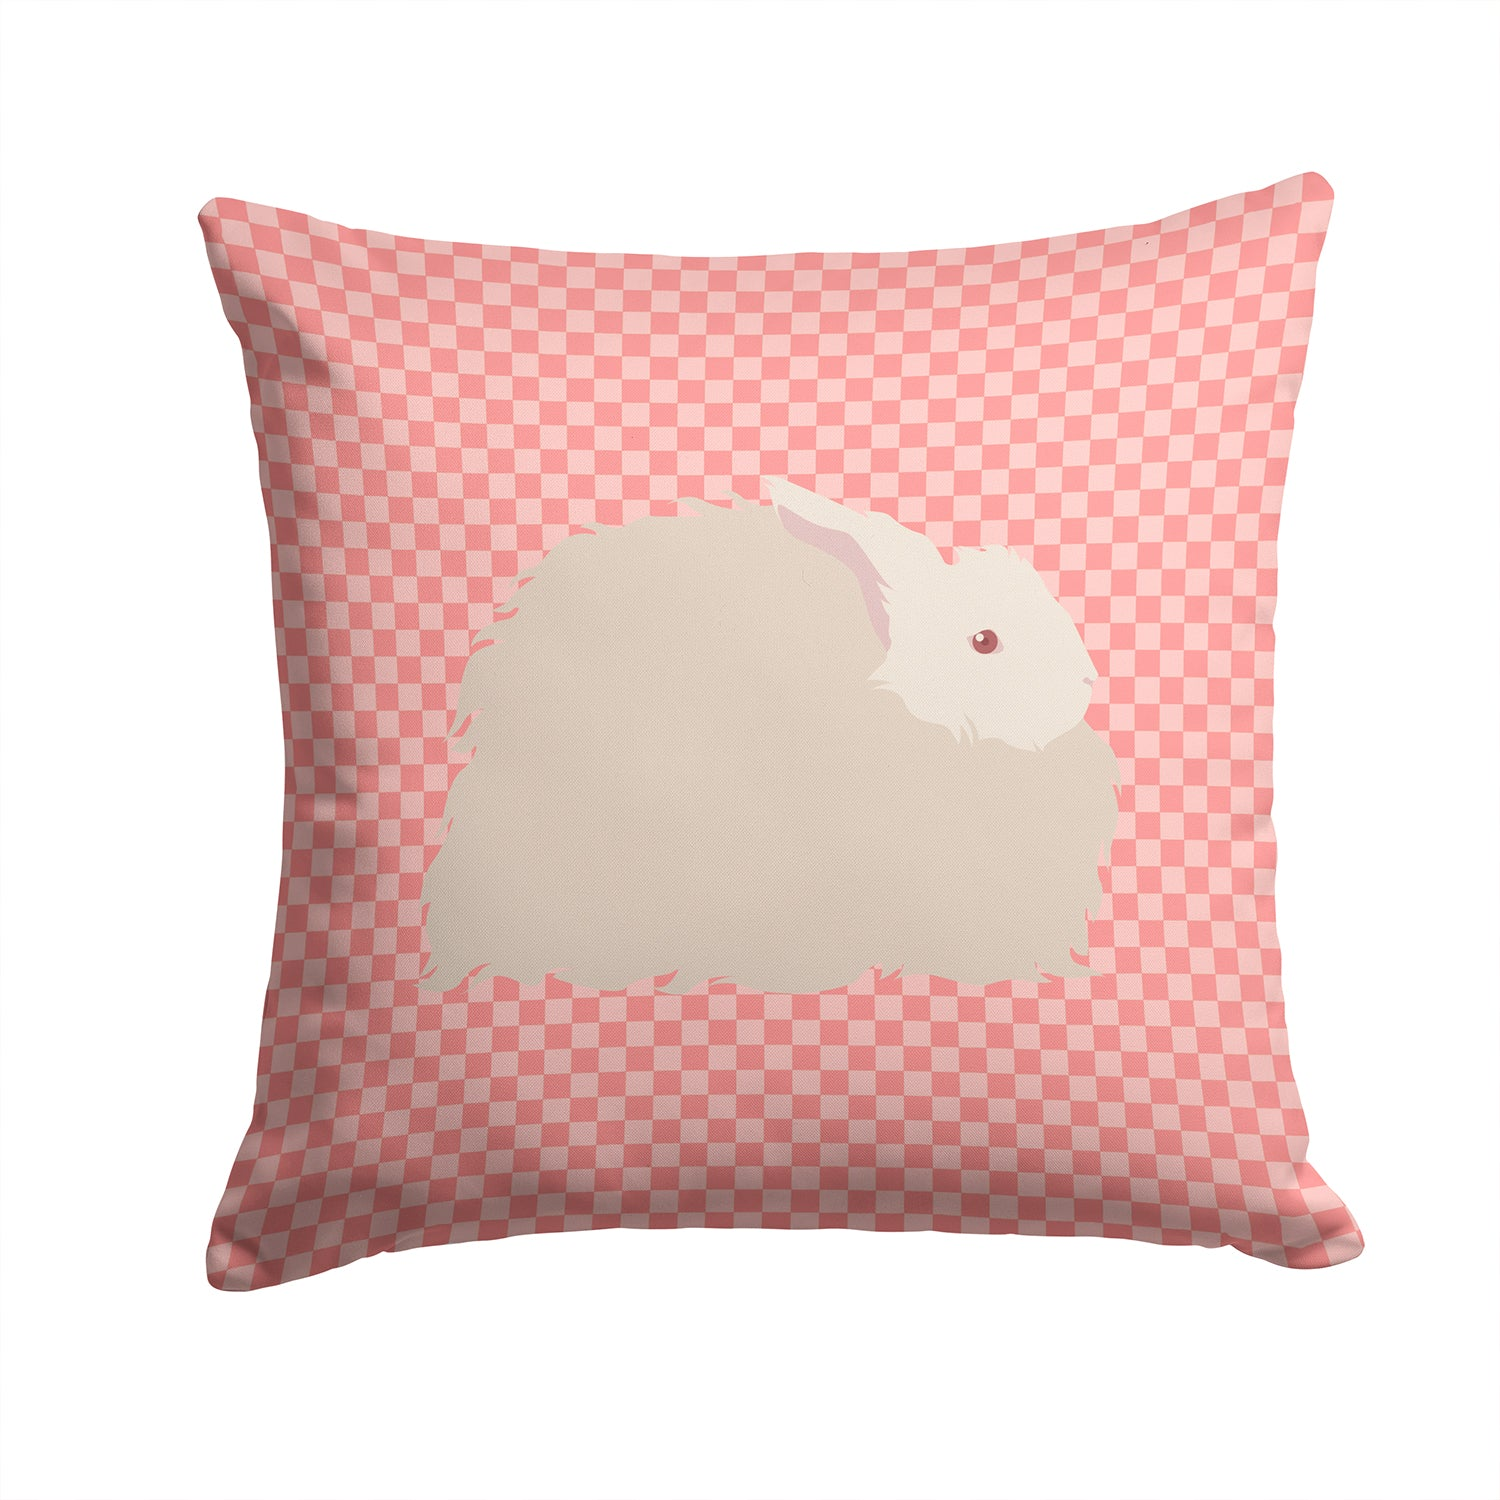 Fluffy Angora Rabbit Pink Check Fabric Decorative Pillow BB7959PW1414 by Caroline's Treasures